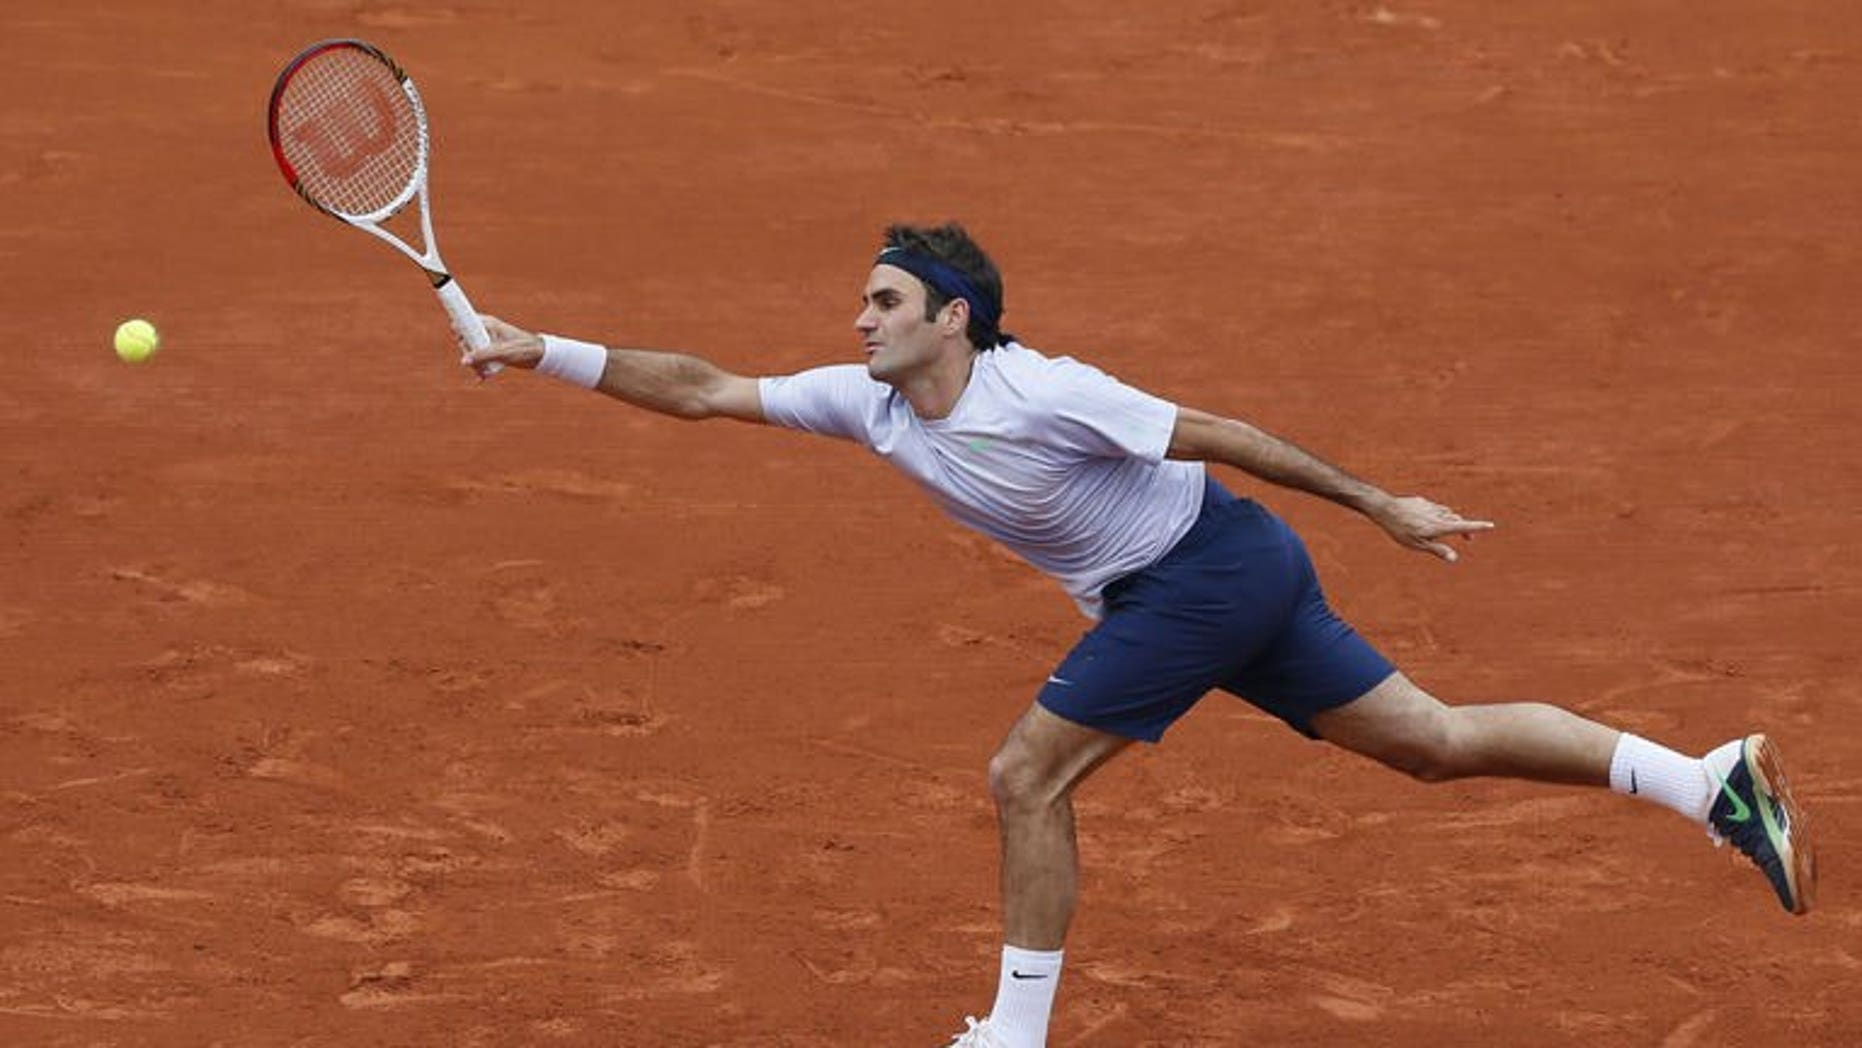 Switzerland's Roger Federer hits a forehand shot in Paris on May 31, 2013. Federer's faltering season suffered another twist on Friday when the former world number one pulled out of next week's Montreal Masters, a key warm-up for the US Open.